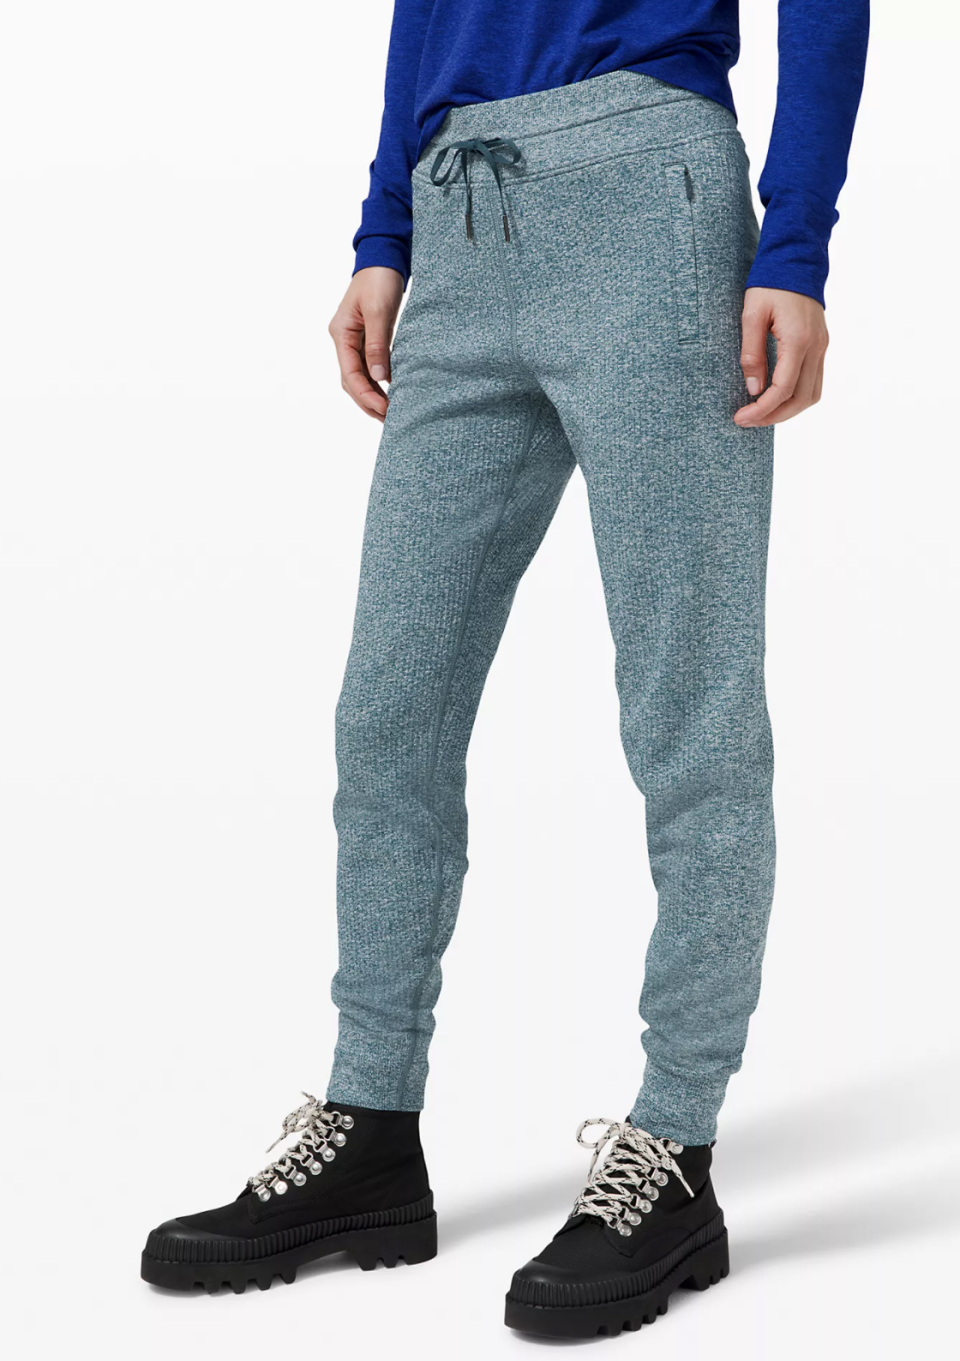 Engineered Warmth Jogger - Lululemon, $119 (originally $148)